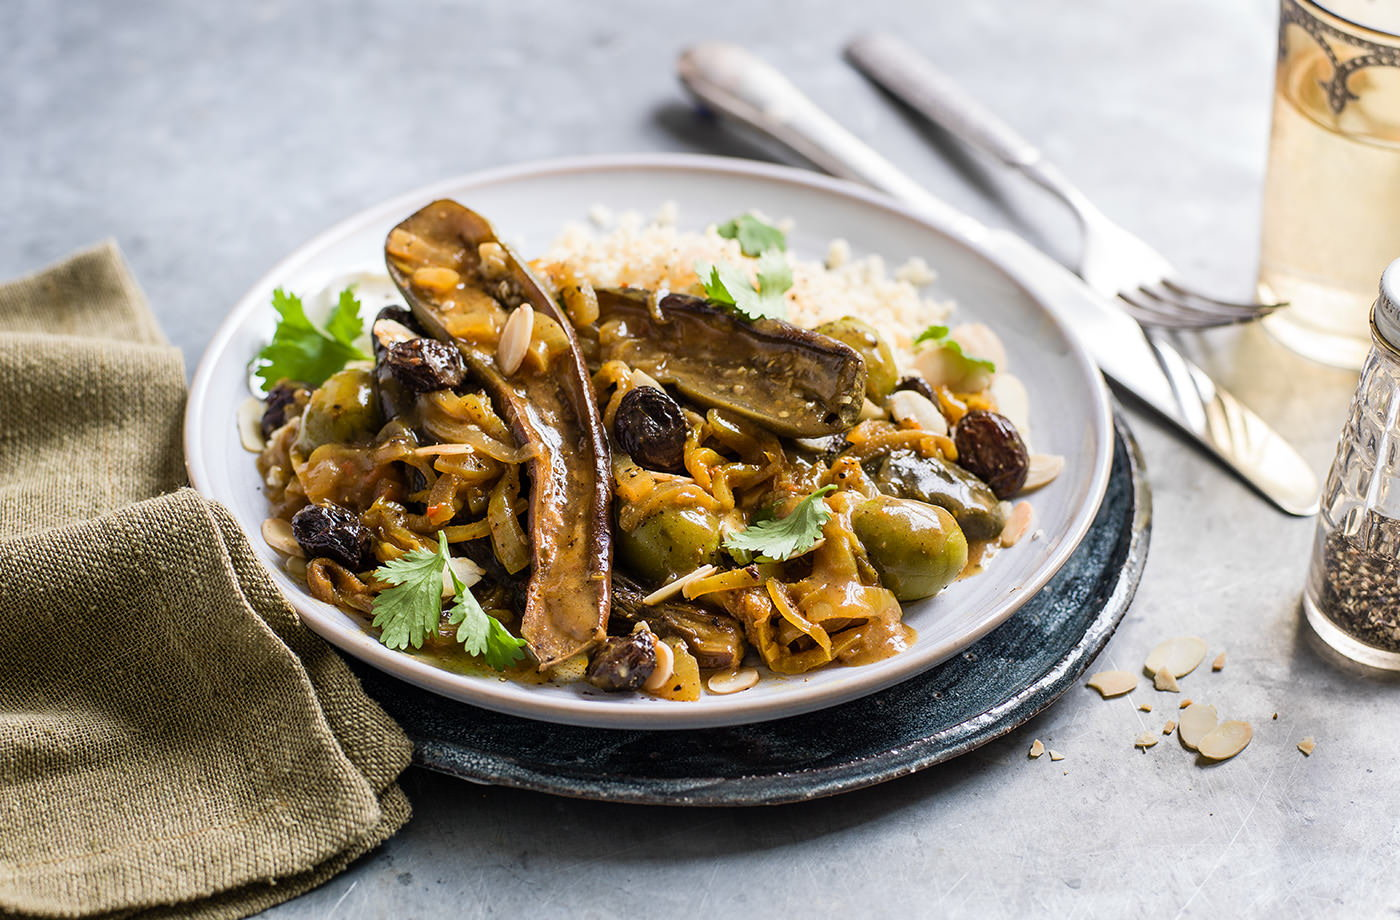 Vegetarian aubergine and olive tagine recipe